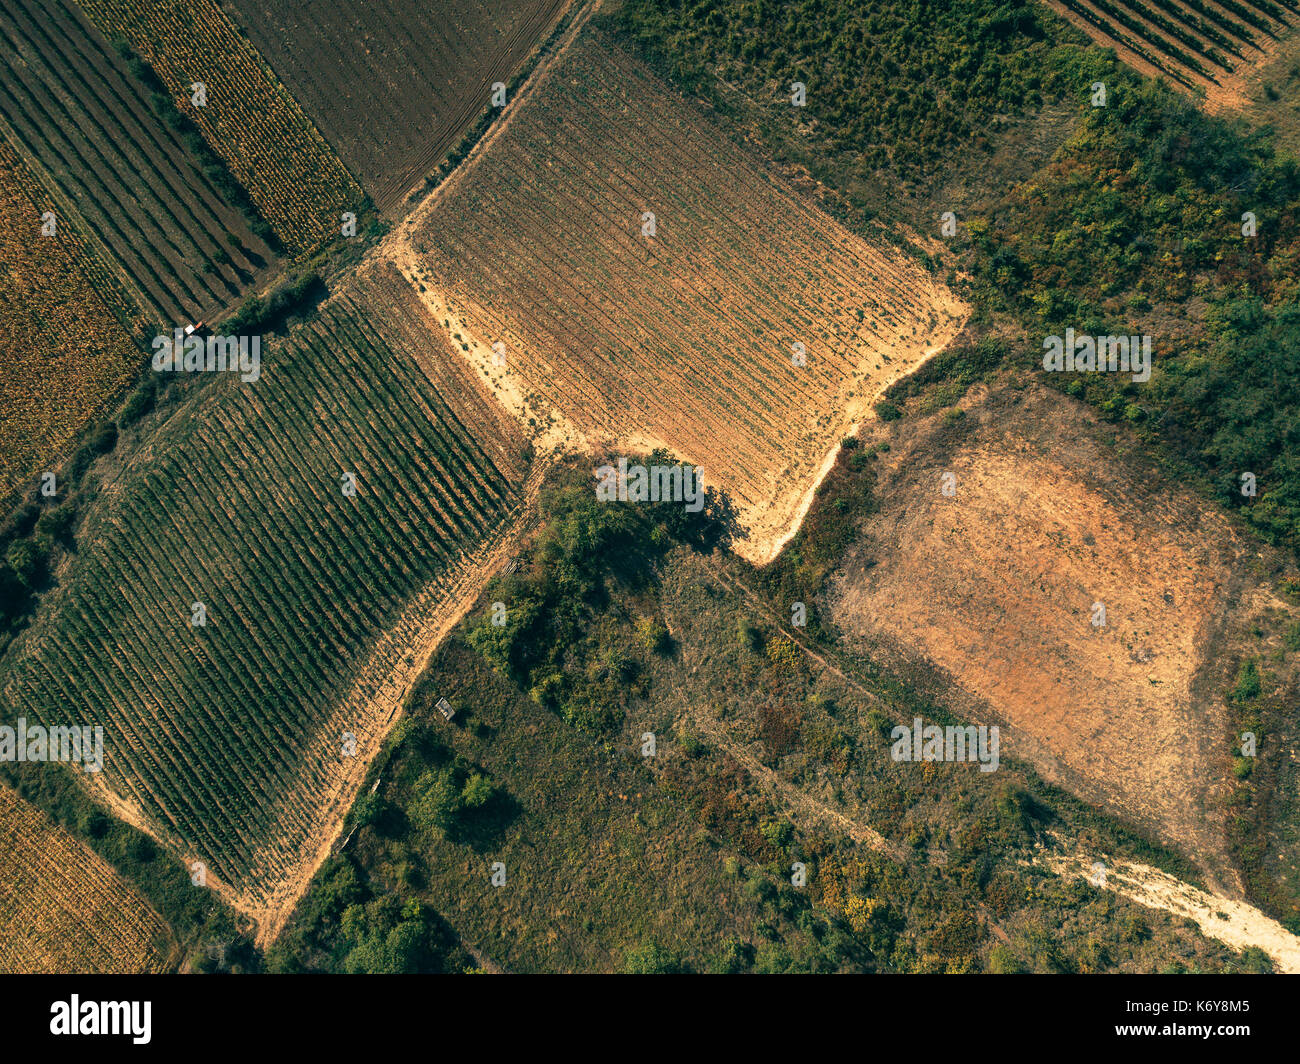 Aerial view of countryside as abstract natural background from drone point of view - Stock Image